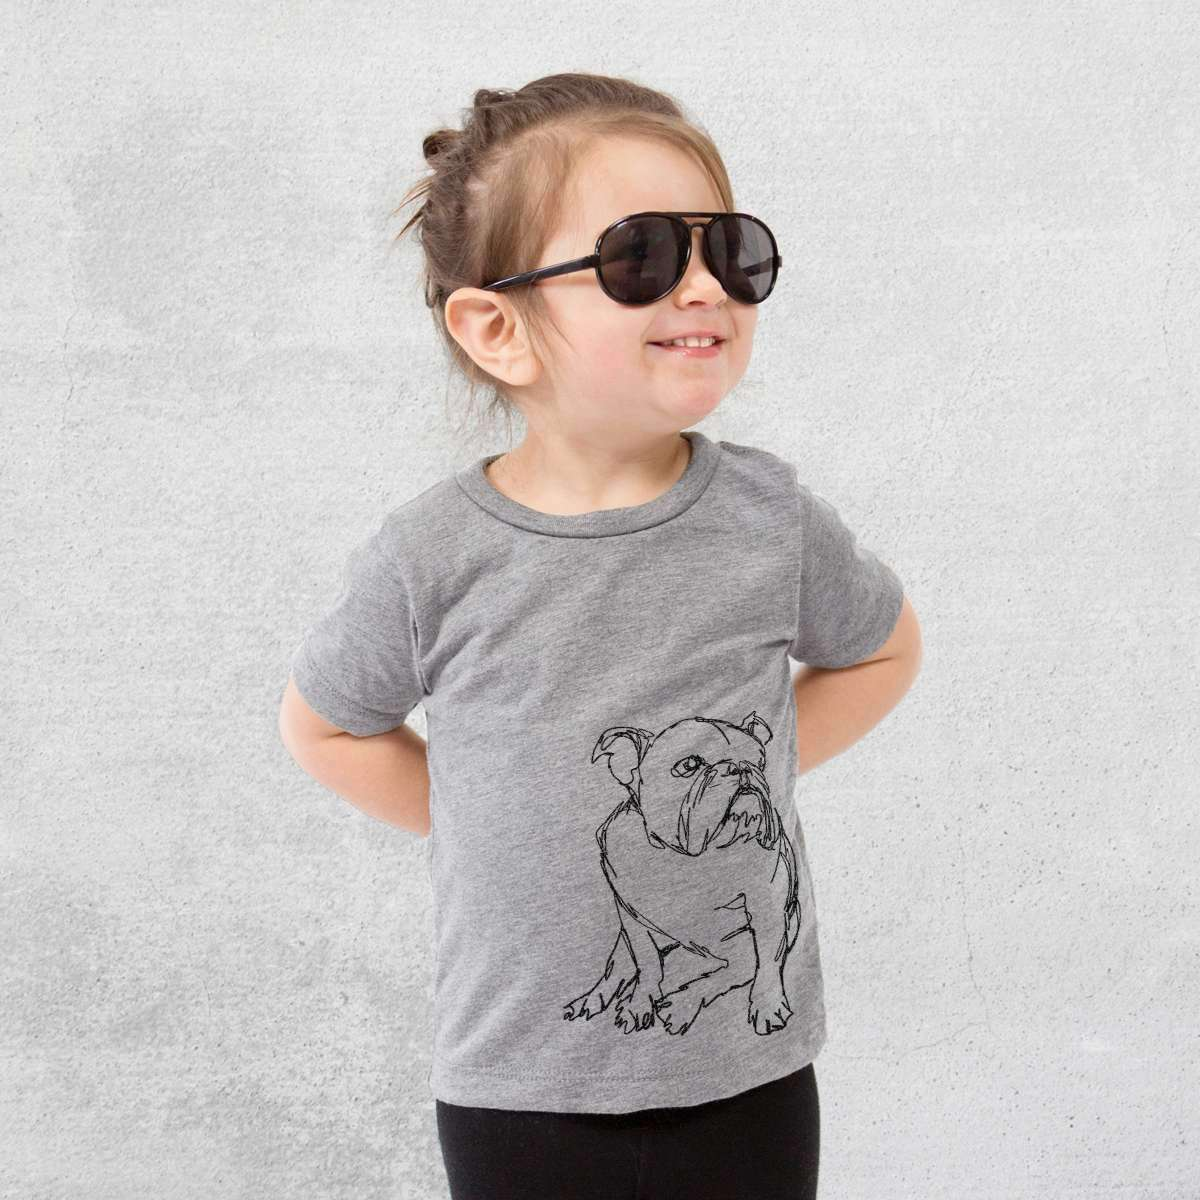 English Bulldog - Doodled - Kids/Youth/Toddler Shirt